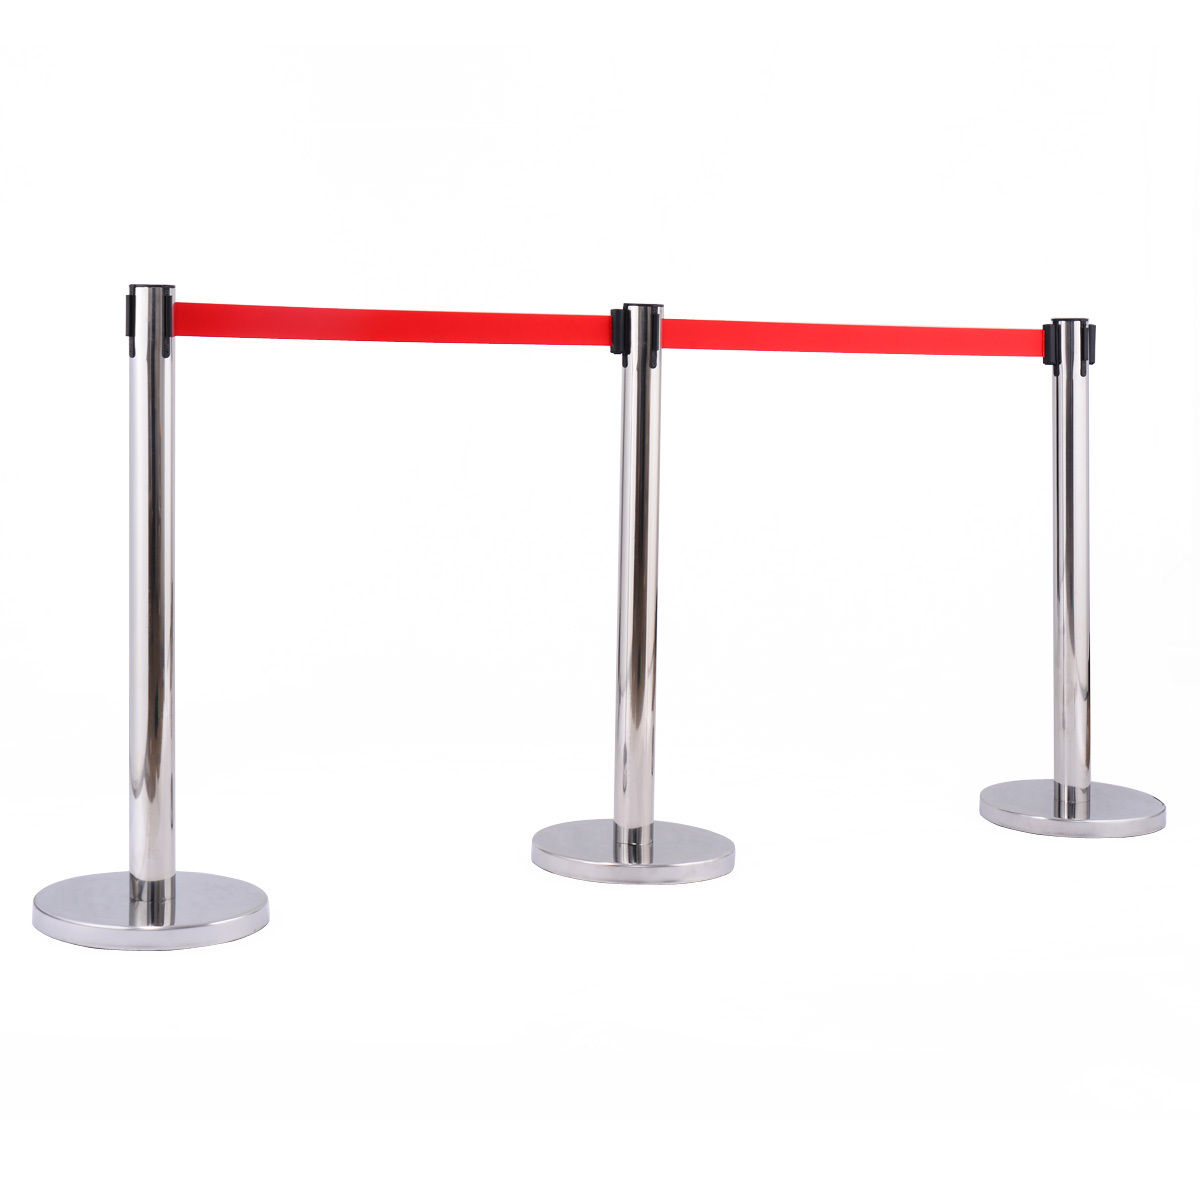 6 pcs Stanchion Posts Queue Belt Crowd Control Barrier